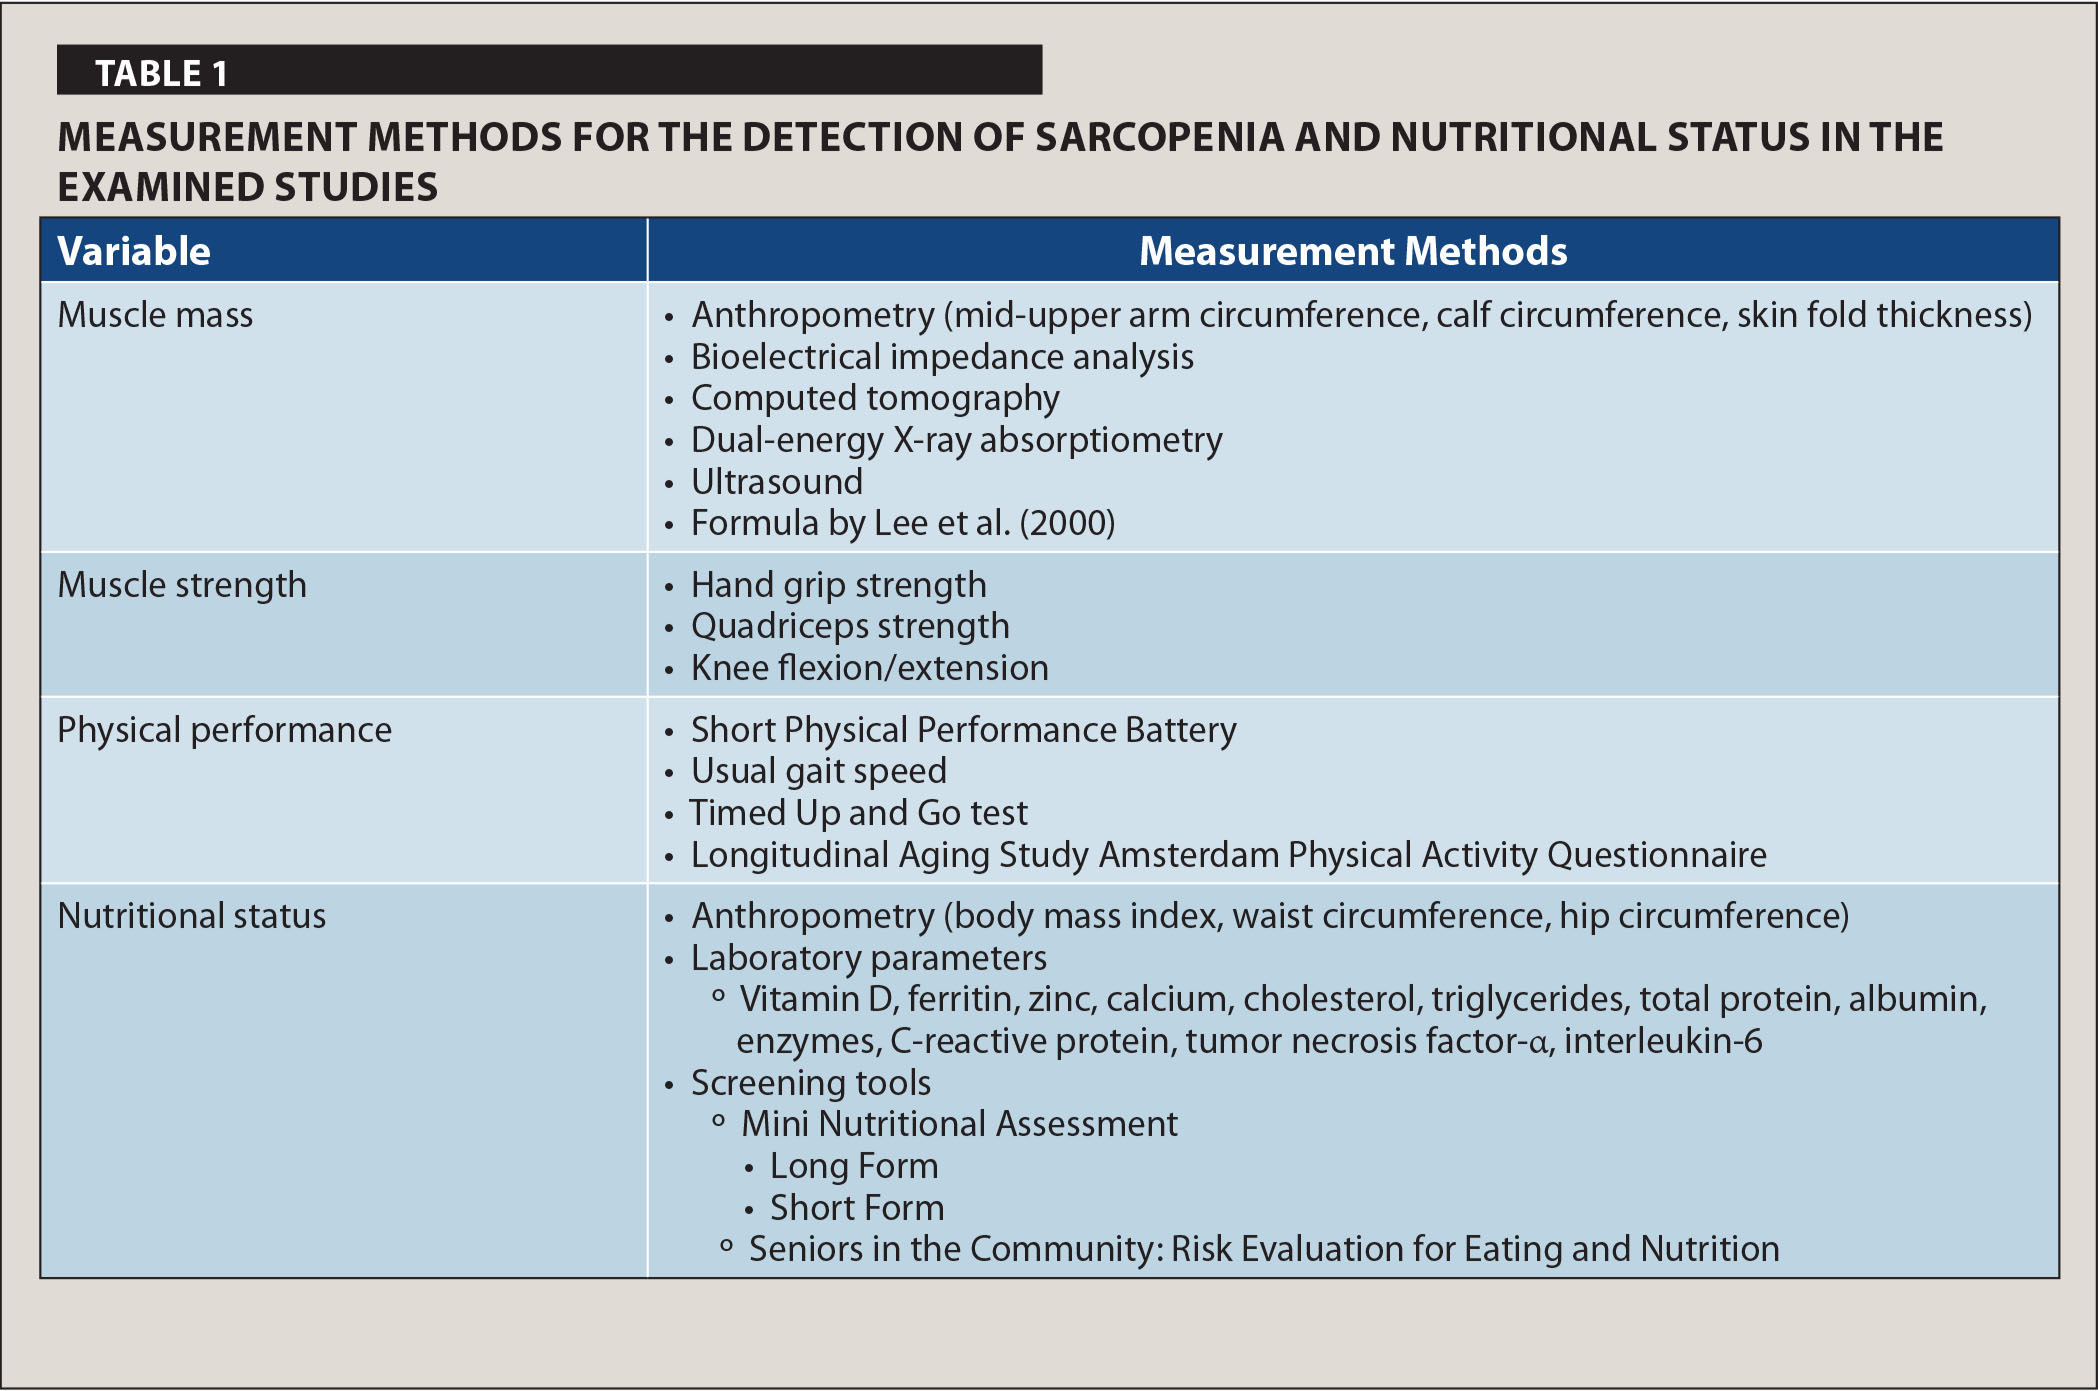 Measurement Methods for the Detection of Sarcopenia and Nutritional Status in the Examined Studies